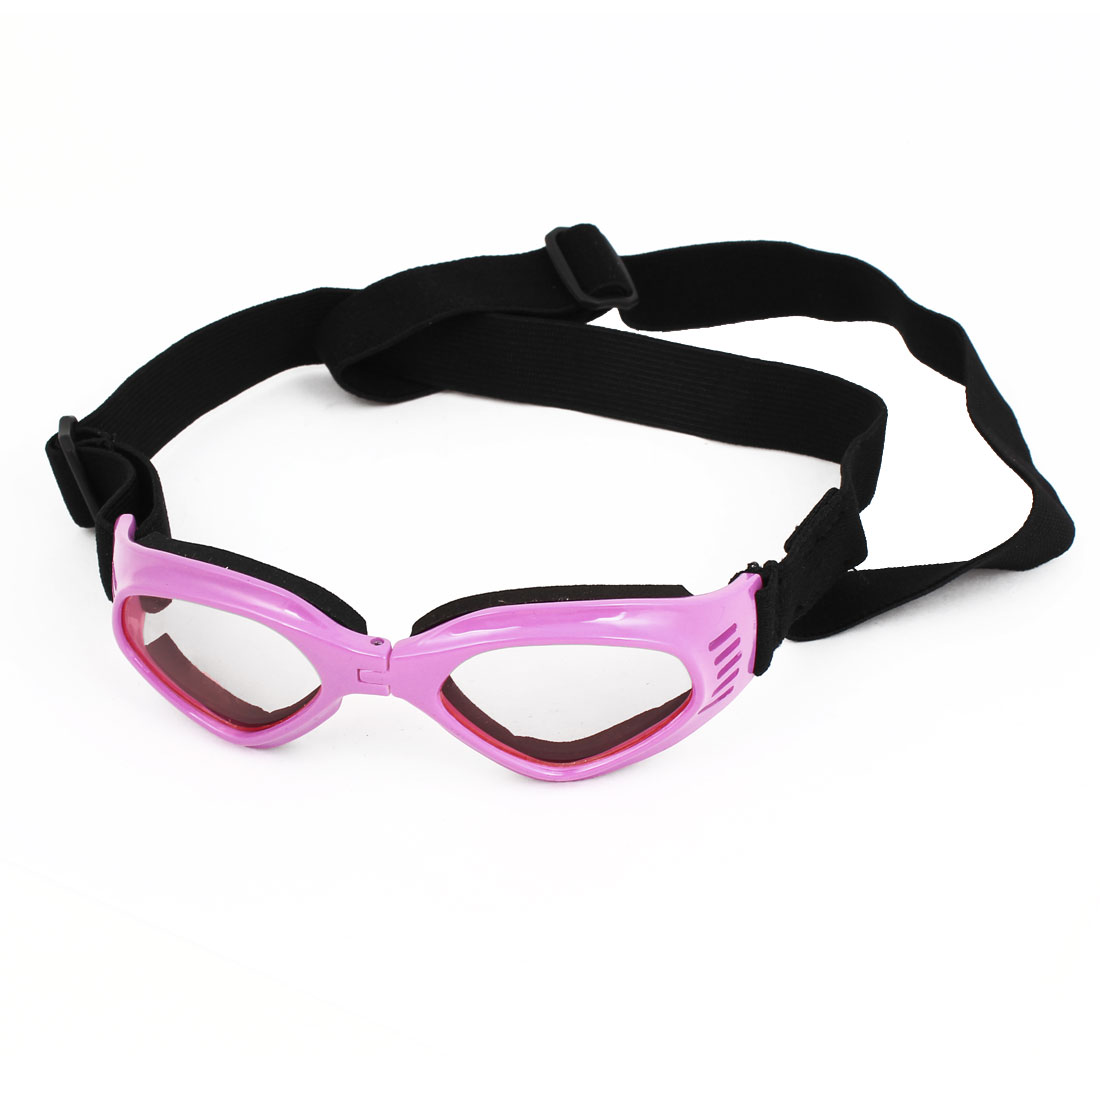 Adjustable Band Fuchsia Foldable Frame Pet Dog Puppy Eye Protective Sunglasses Goggles